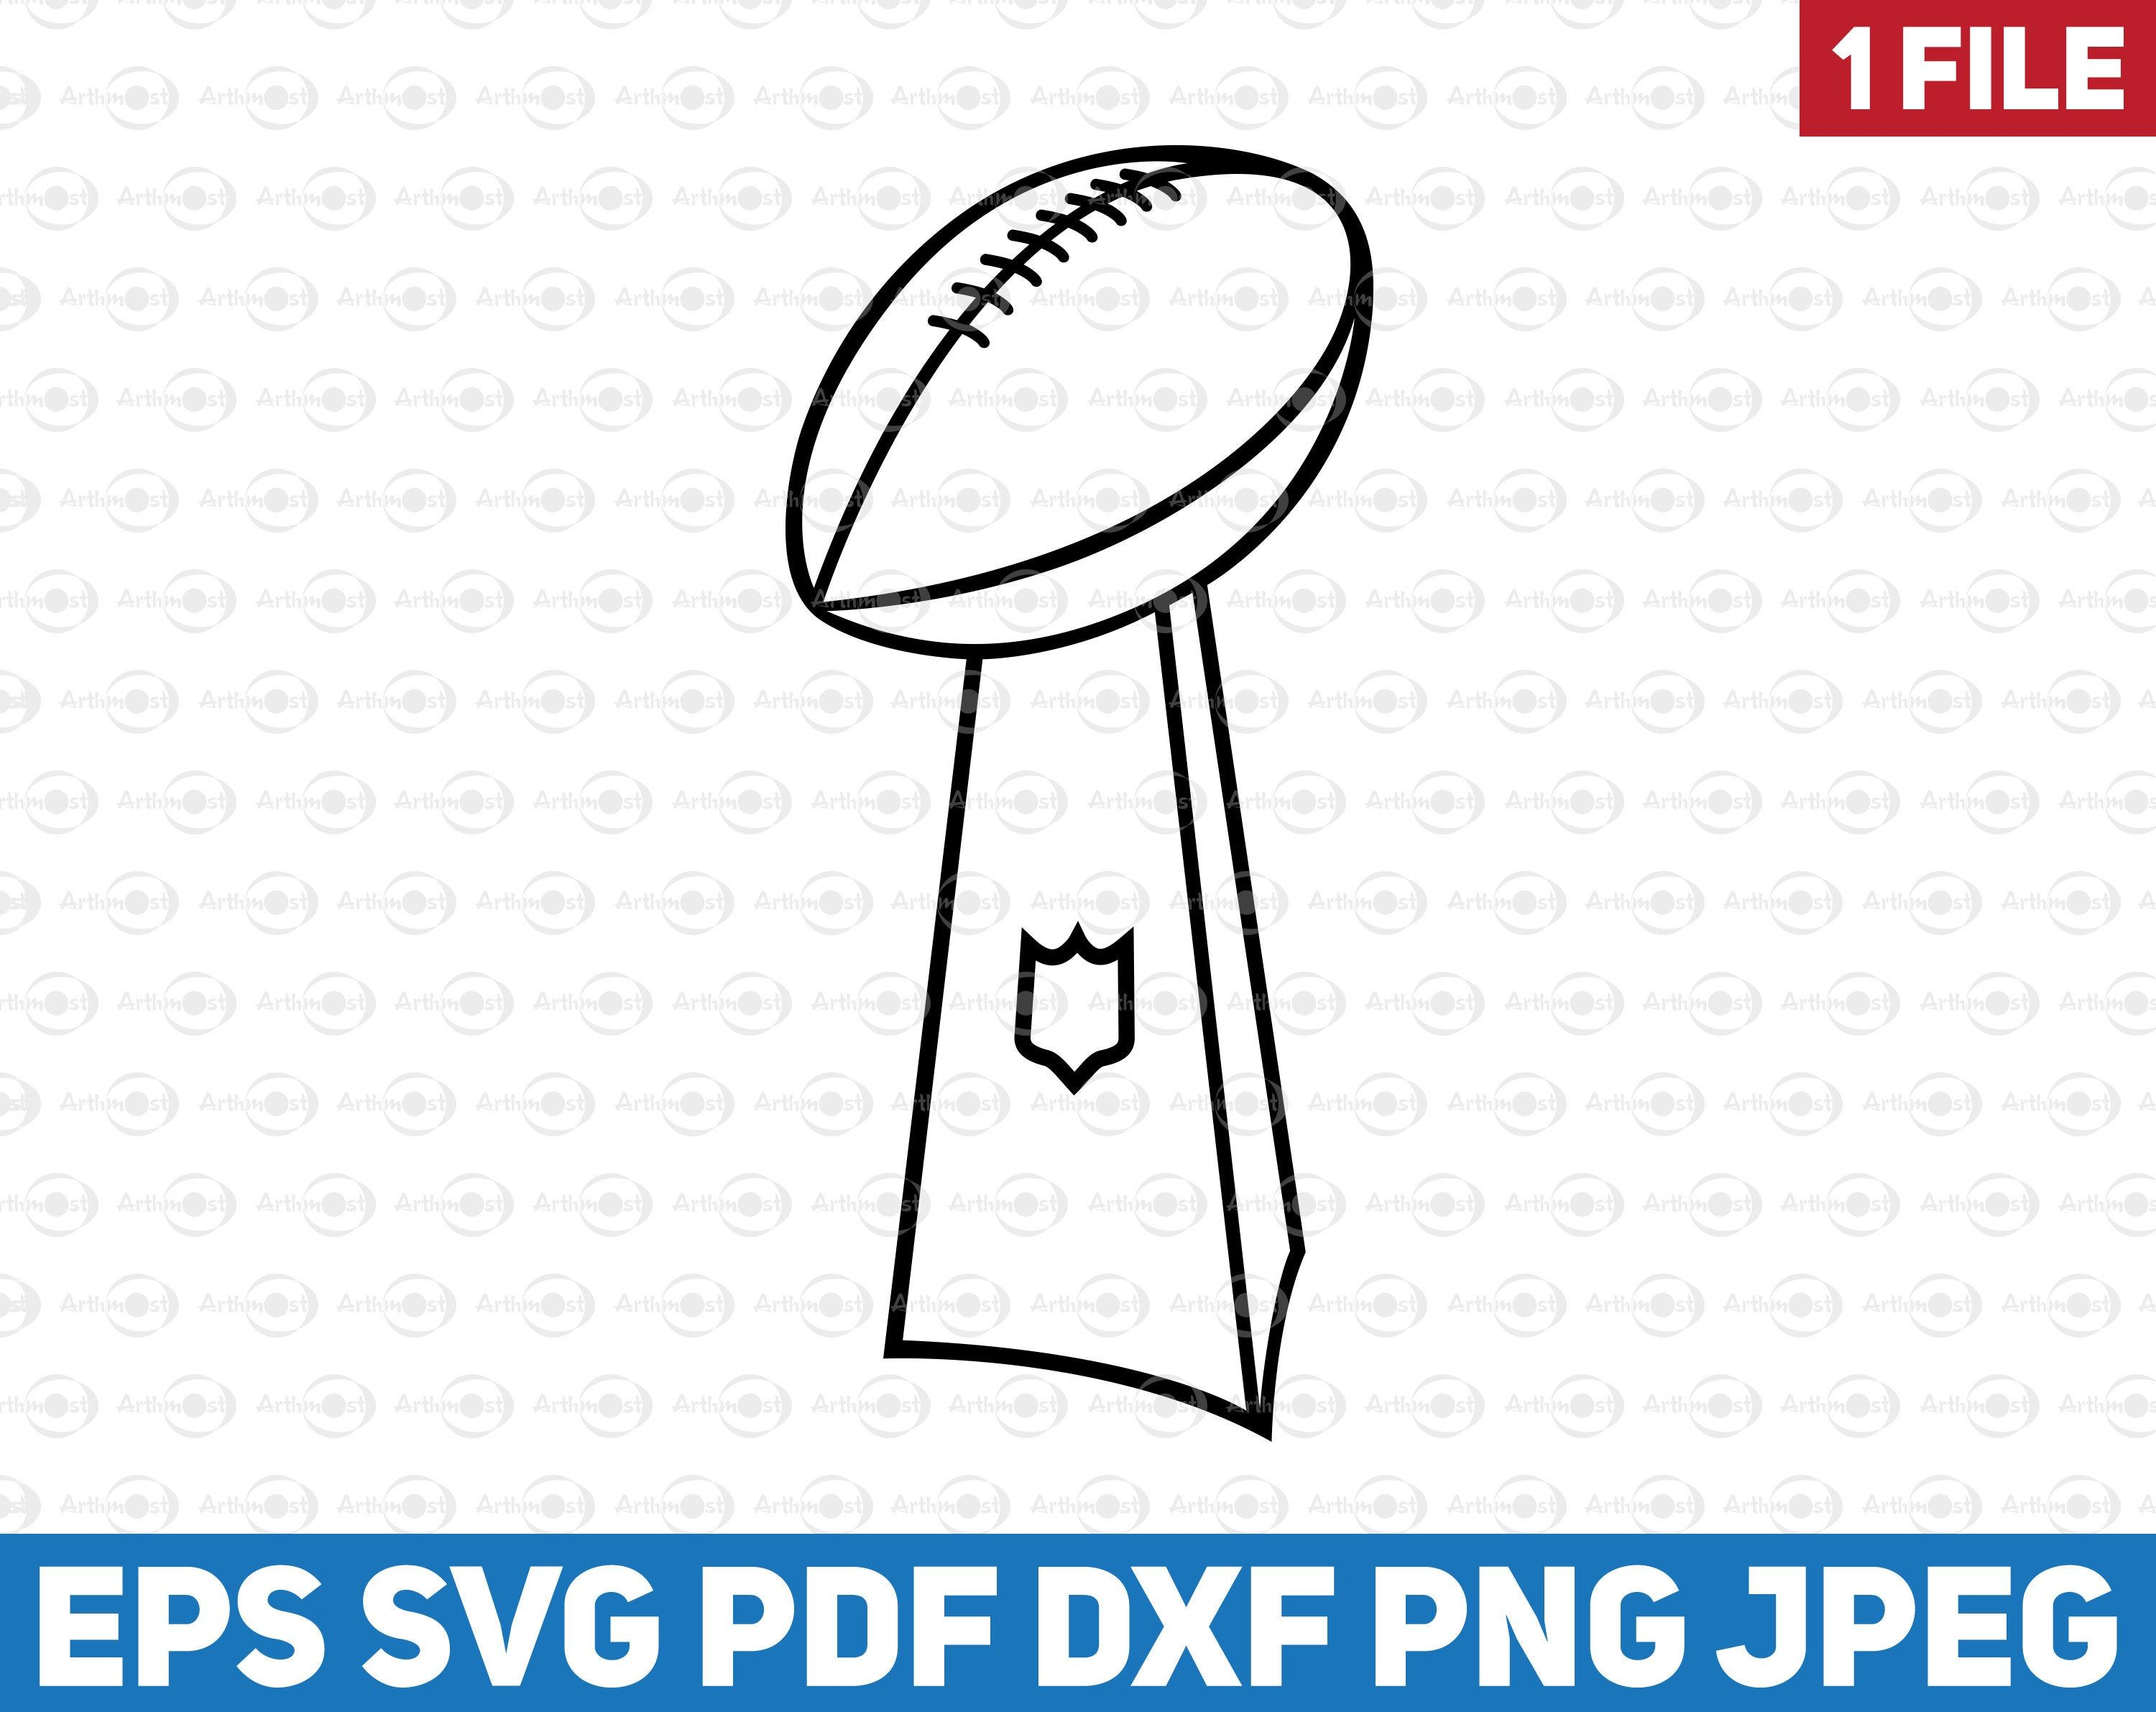 Super Bowl 2021 Contour Clipart Svg Vince Lombardi Trophy Etsy In 2021 Football Tattoo Clip Art Vince Lombardi